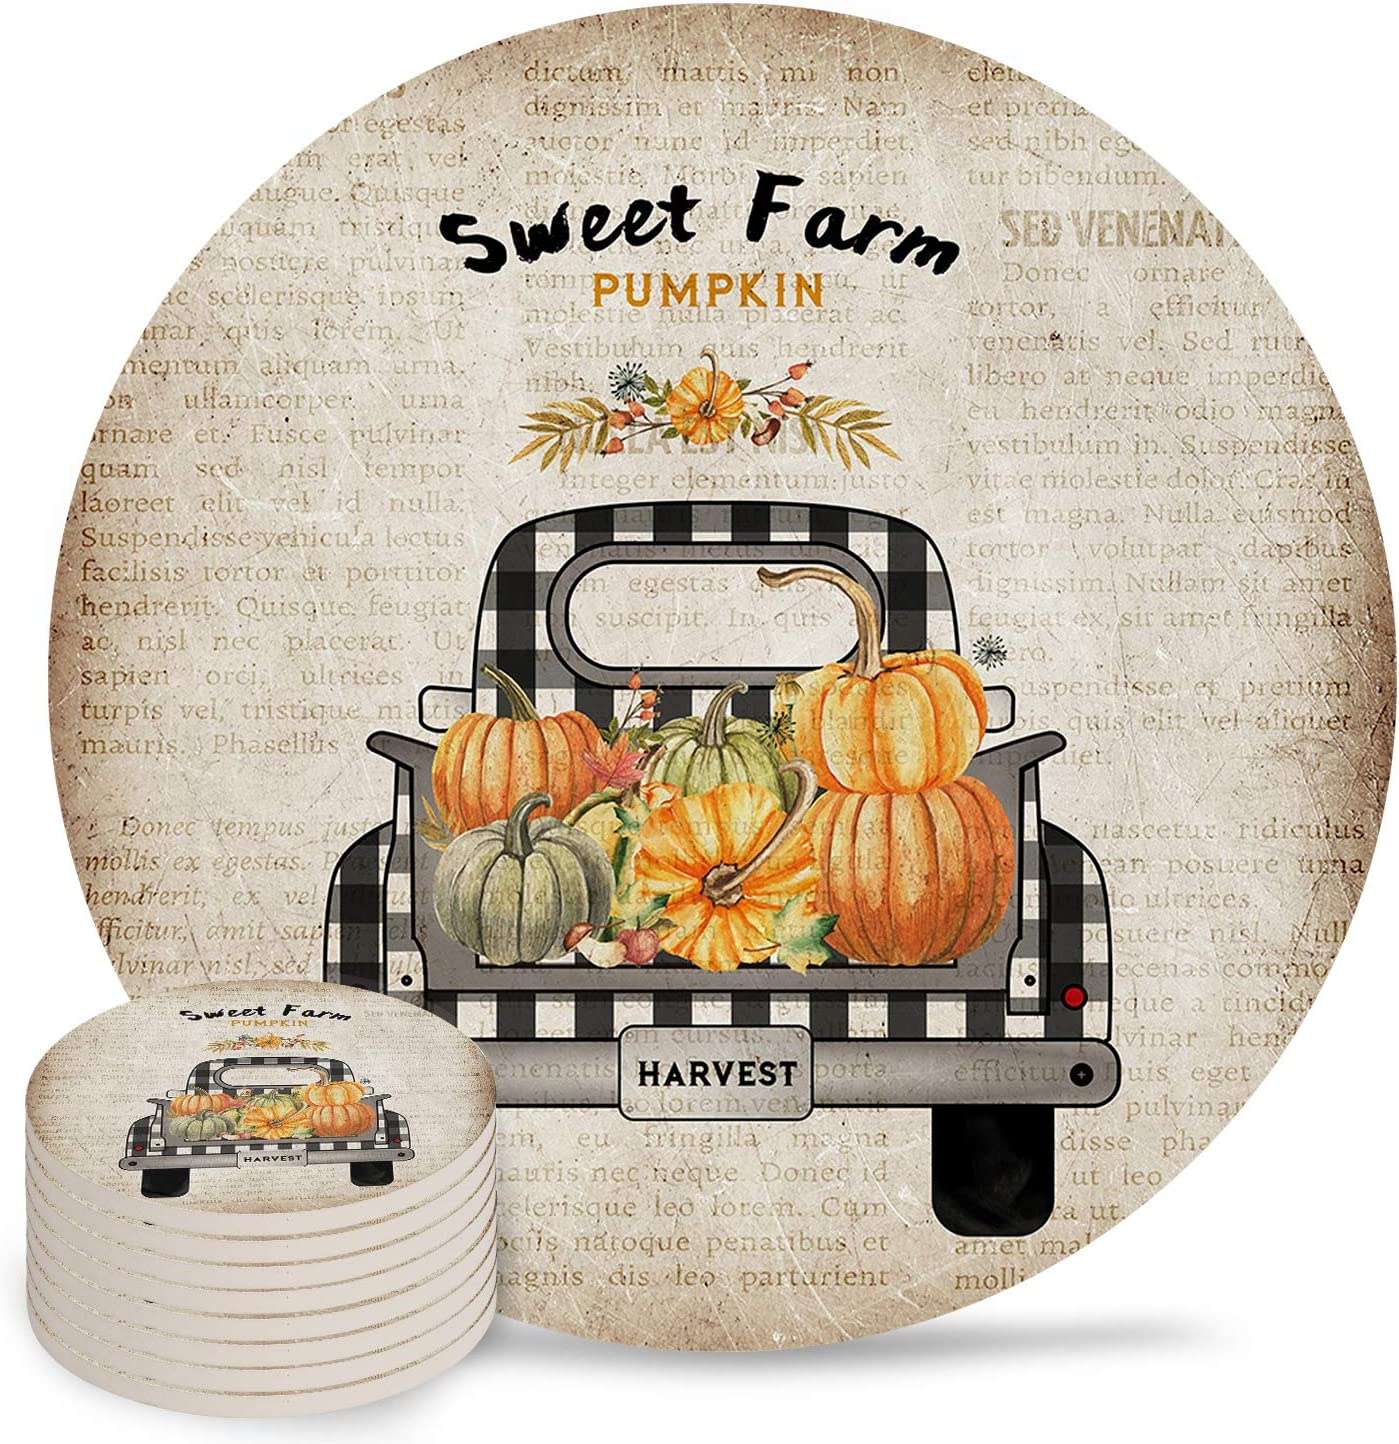 Sweet Farm Pumpkin 8-Piece Colorado Springs Mall Set Drinks for Absorbent Cer Animer and price revision Coaster